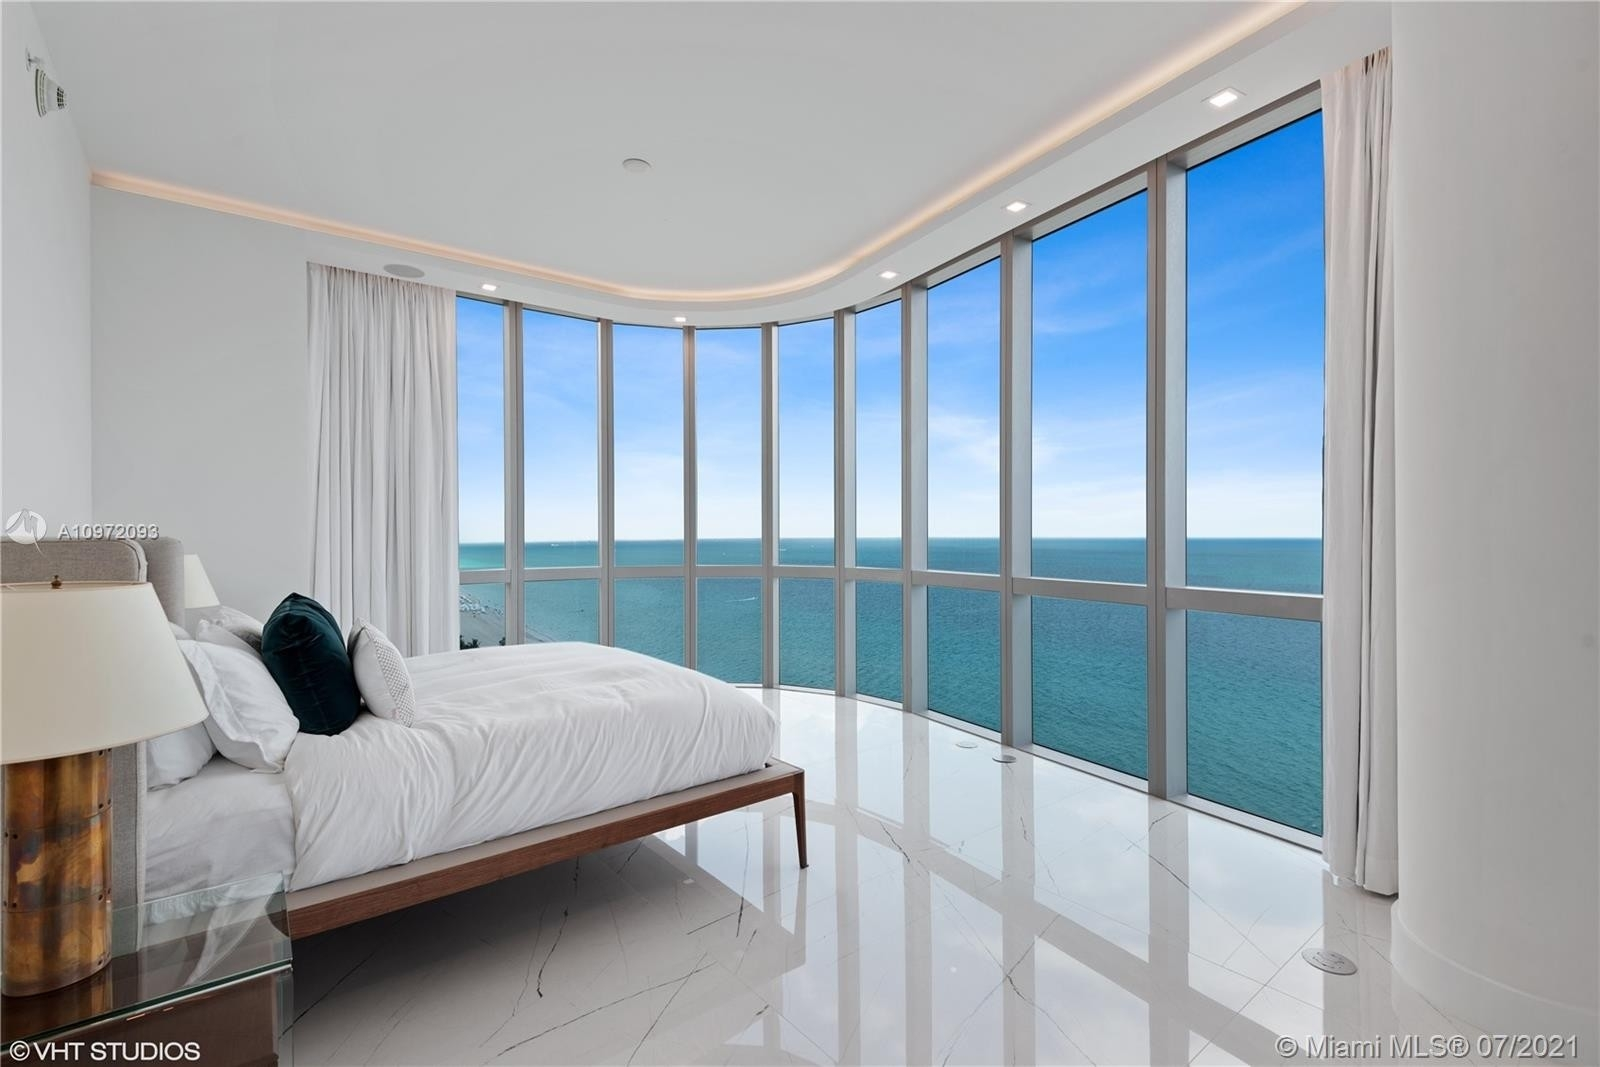 17. Condominiums for Sale at 17475 Collins Ave , 1501 Sunny Isles Beach, FL 33160